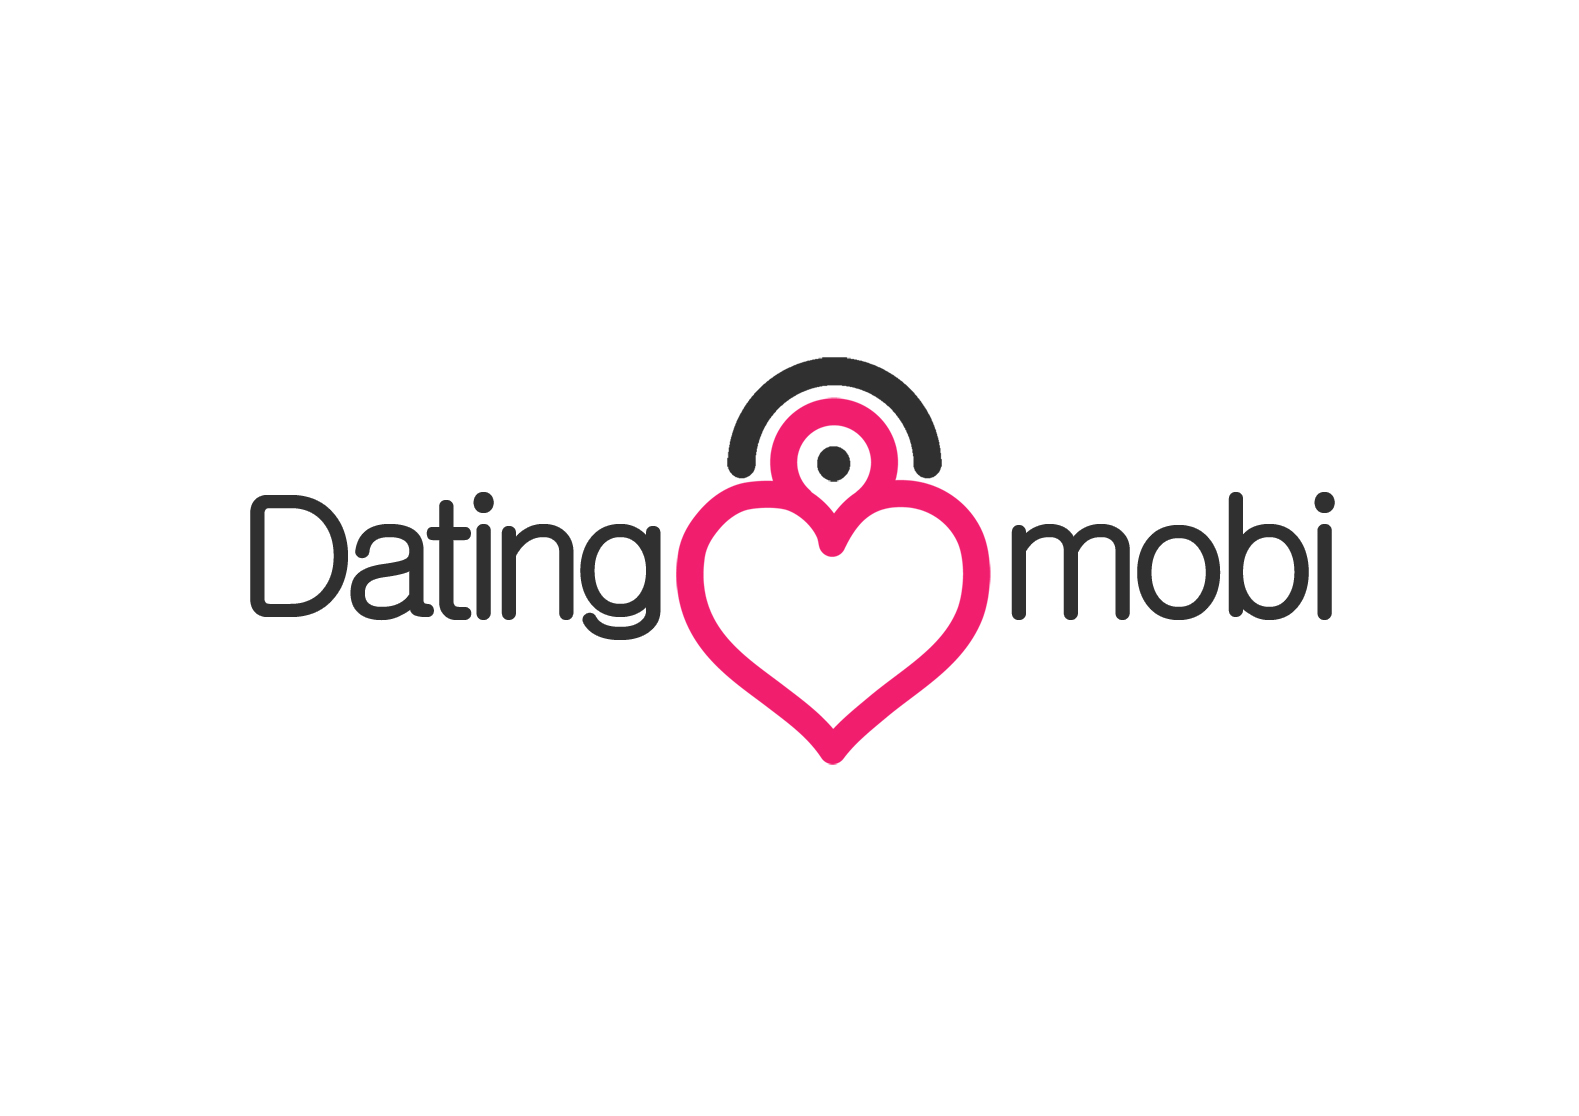 all dating site in united state Maximum age difference in dating age disparity in sexual relationships is the difference in ages of individuals in sexual relationshipsconcepts maximum age difference affordable care act breast pump in dating of these latest dating site in united state relationships, including what.